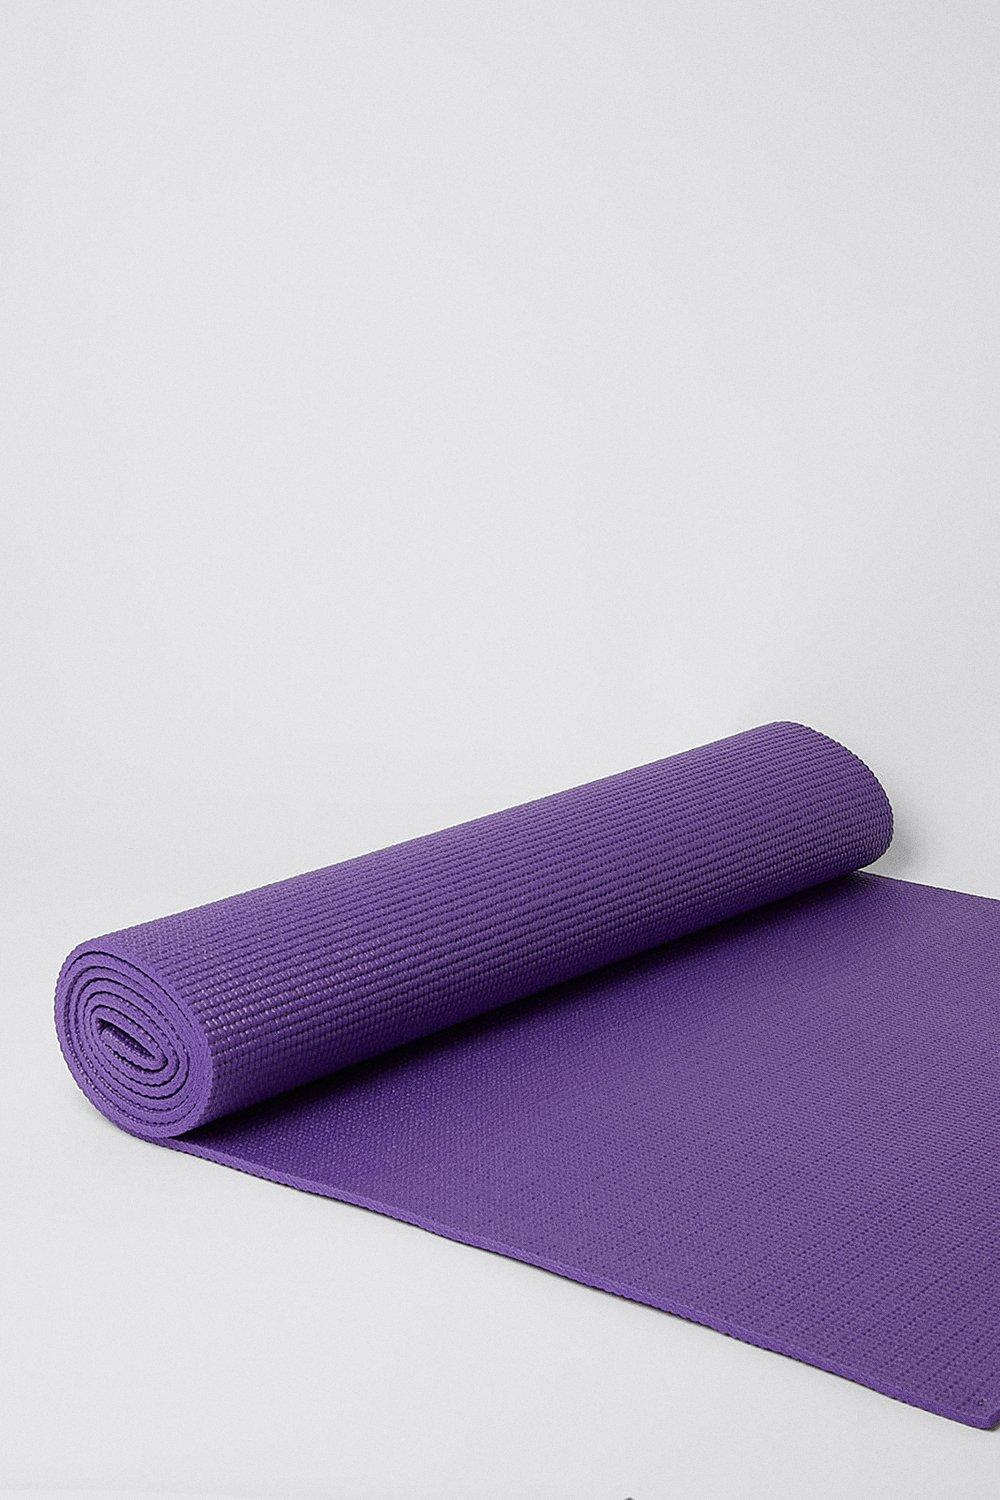 Novelty Gifts Womens Exercise Mat - purple, Purple